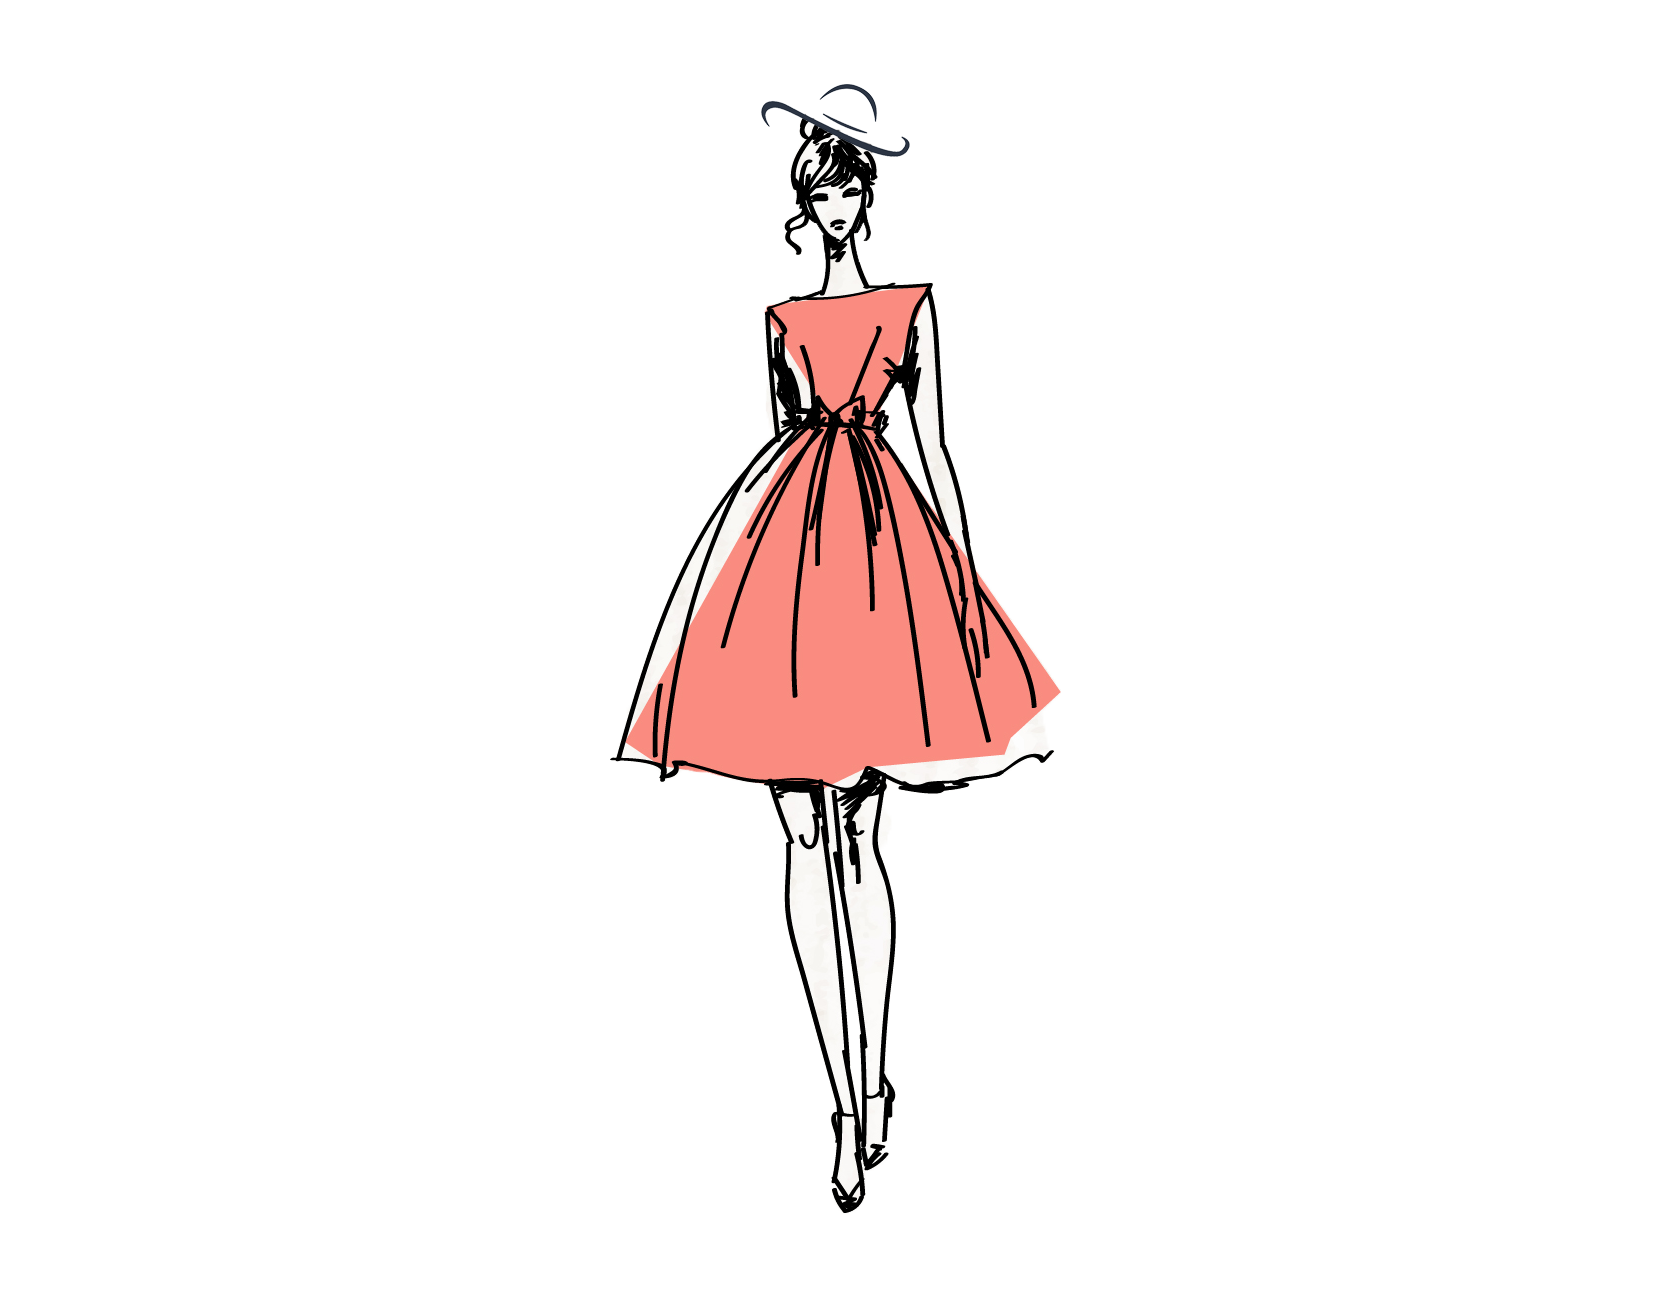 Fashionista drawing vogue dress. To success your place